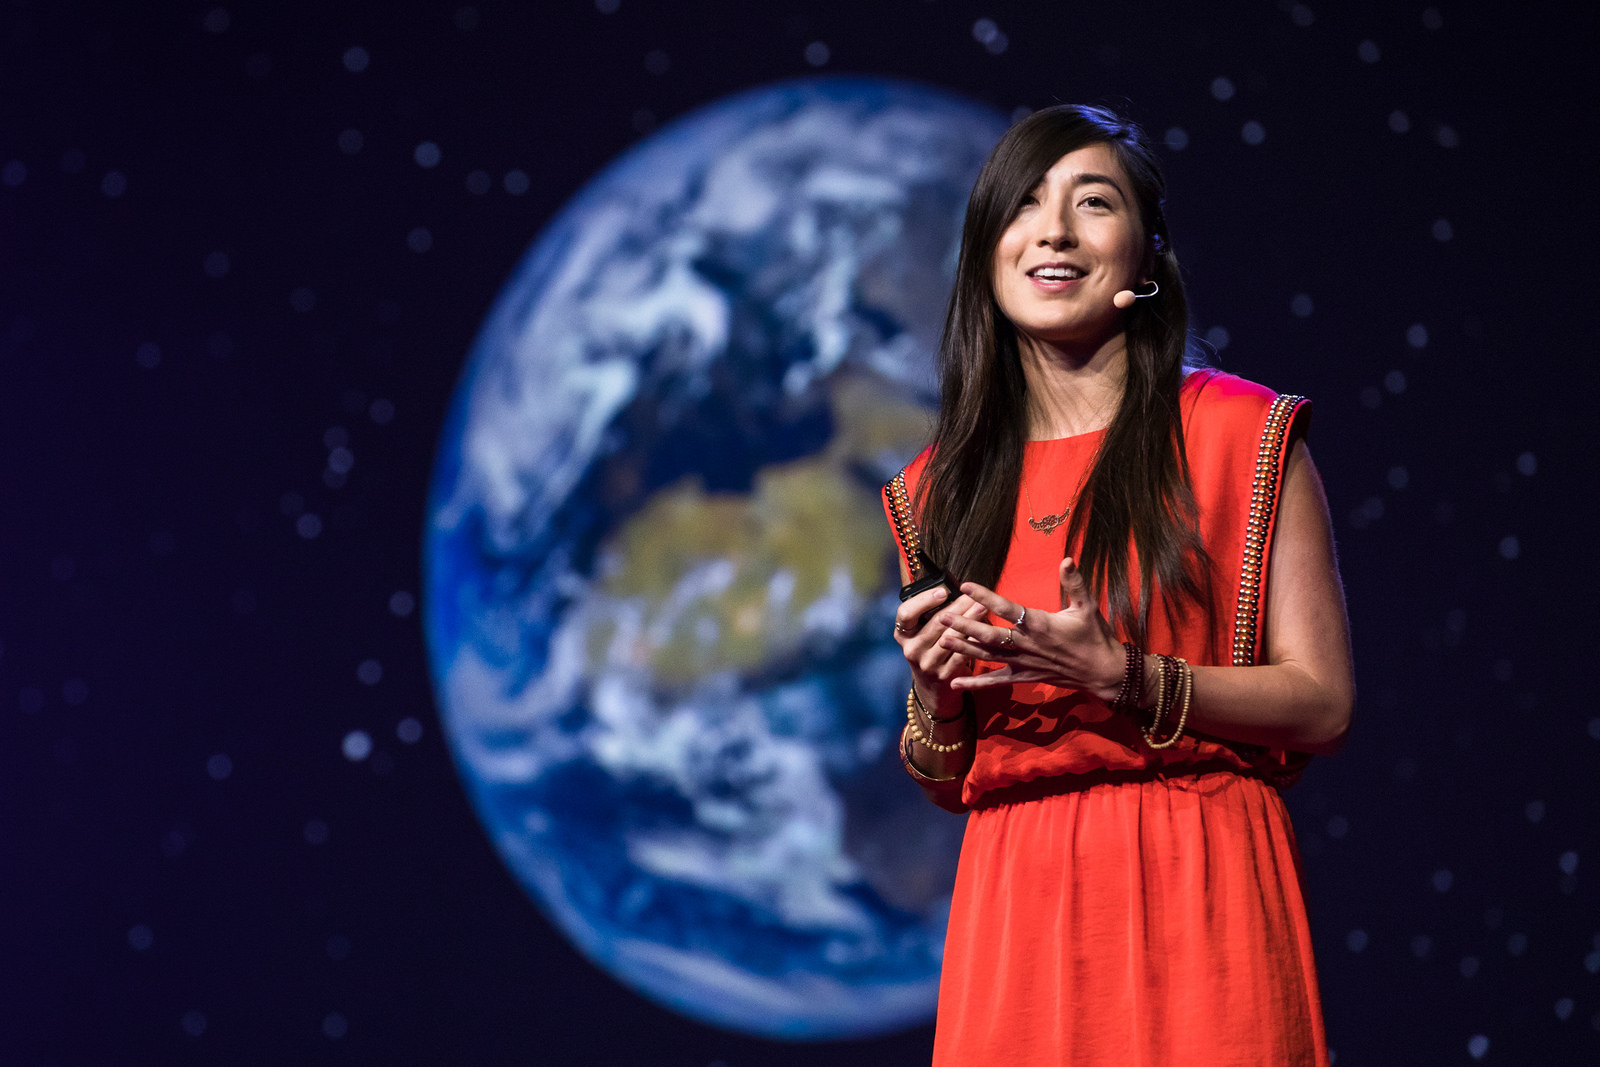 """Dr. Miho Janvier  talks about her work studying solar storms, and tells us about the ways these storms have impacted humans in the past. She explains why they are challenging to model and says why she's interested in """"garbage"""" data from planetary missions.  Folllow Dr. Janvier on  Twitter , and watch her  TED talk !   Image : Miho Janvier speaks at TEDGlobal 2017, Arusha, Tanzania. Photo: Ryan Lash / TED"""